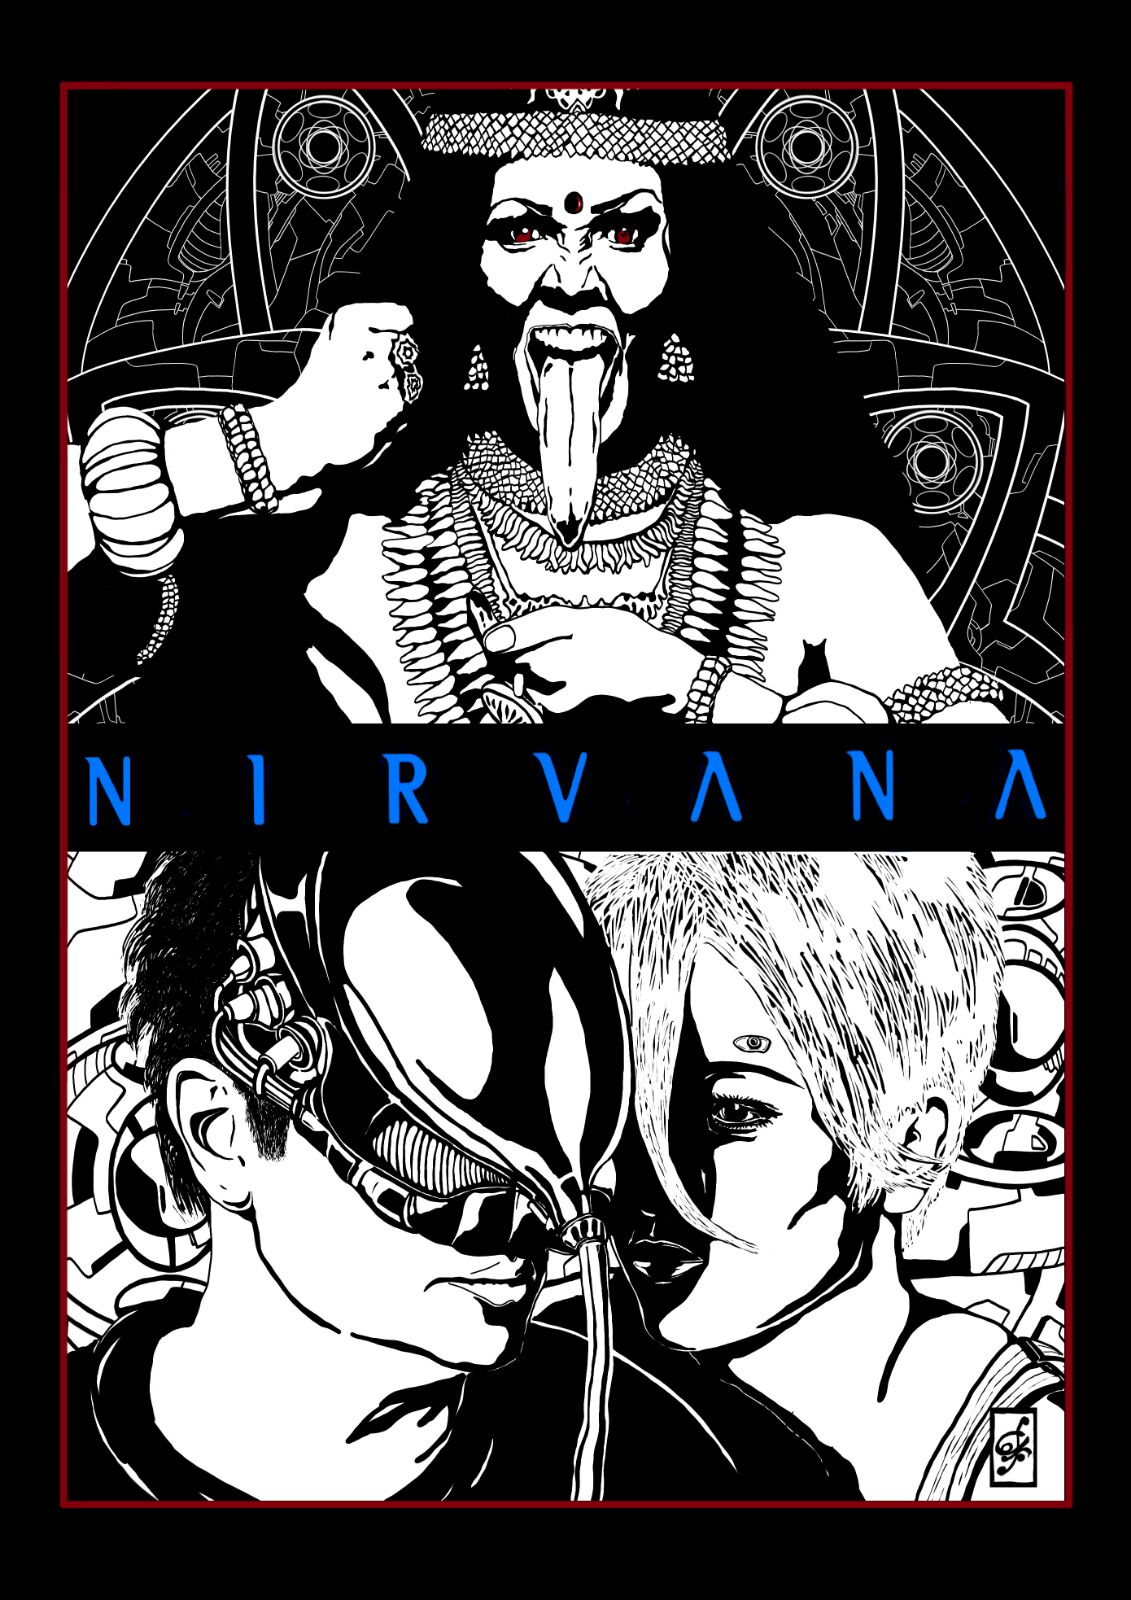 nirvana-salvatores-cinema-movie-scifi-film-cult-cultstories-fanart-mgatti-gatti